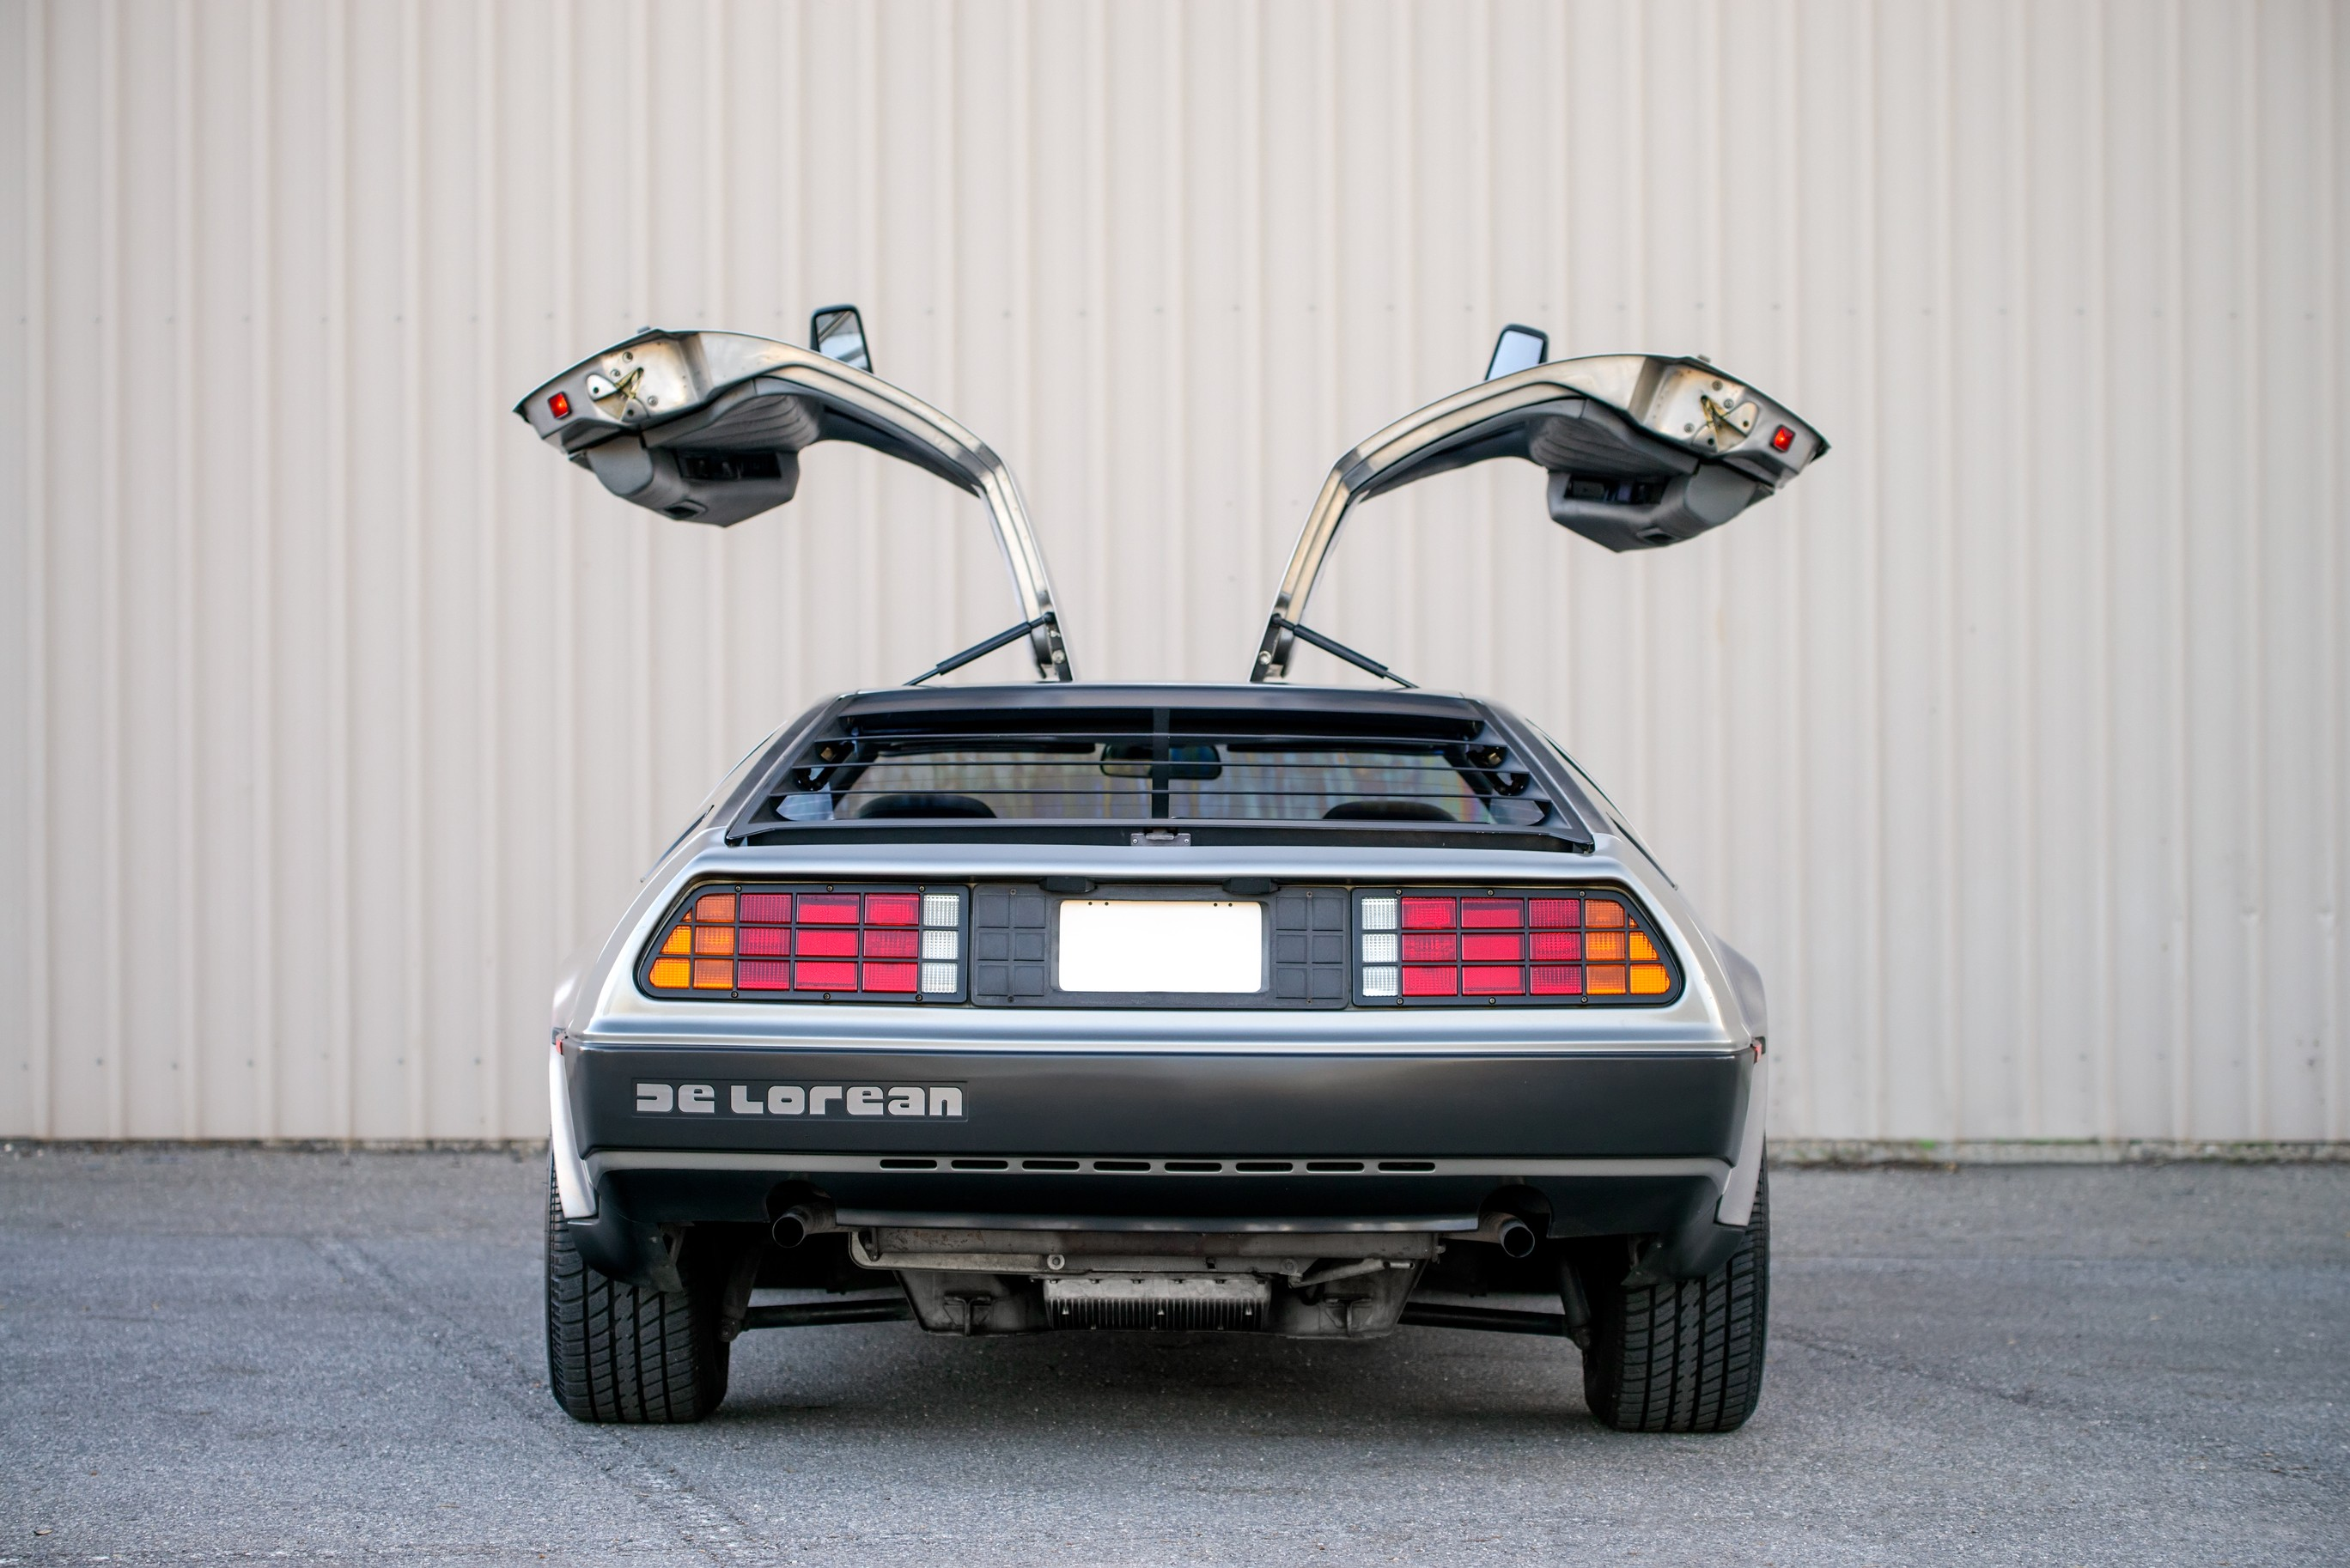 Back to the future delorean the most iconic movie car